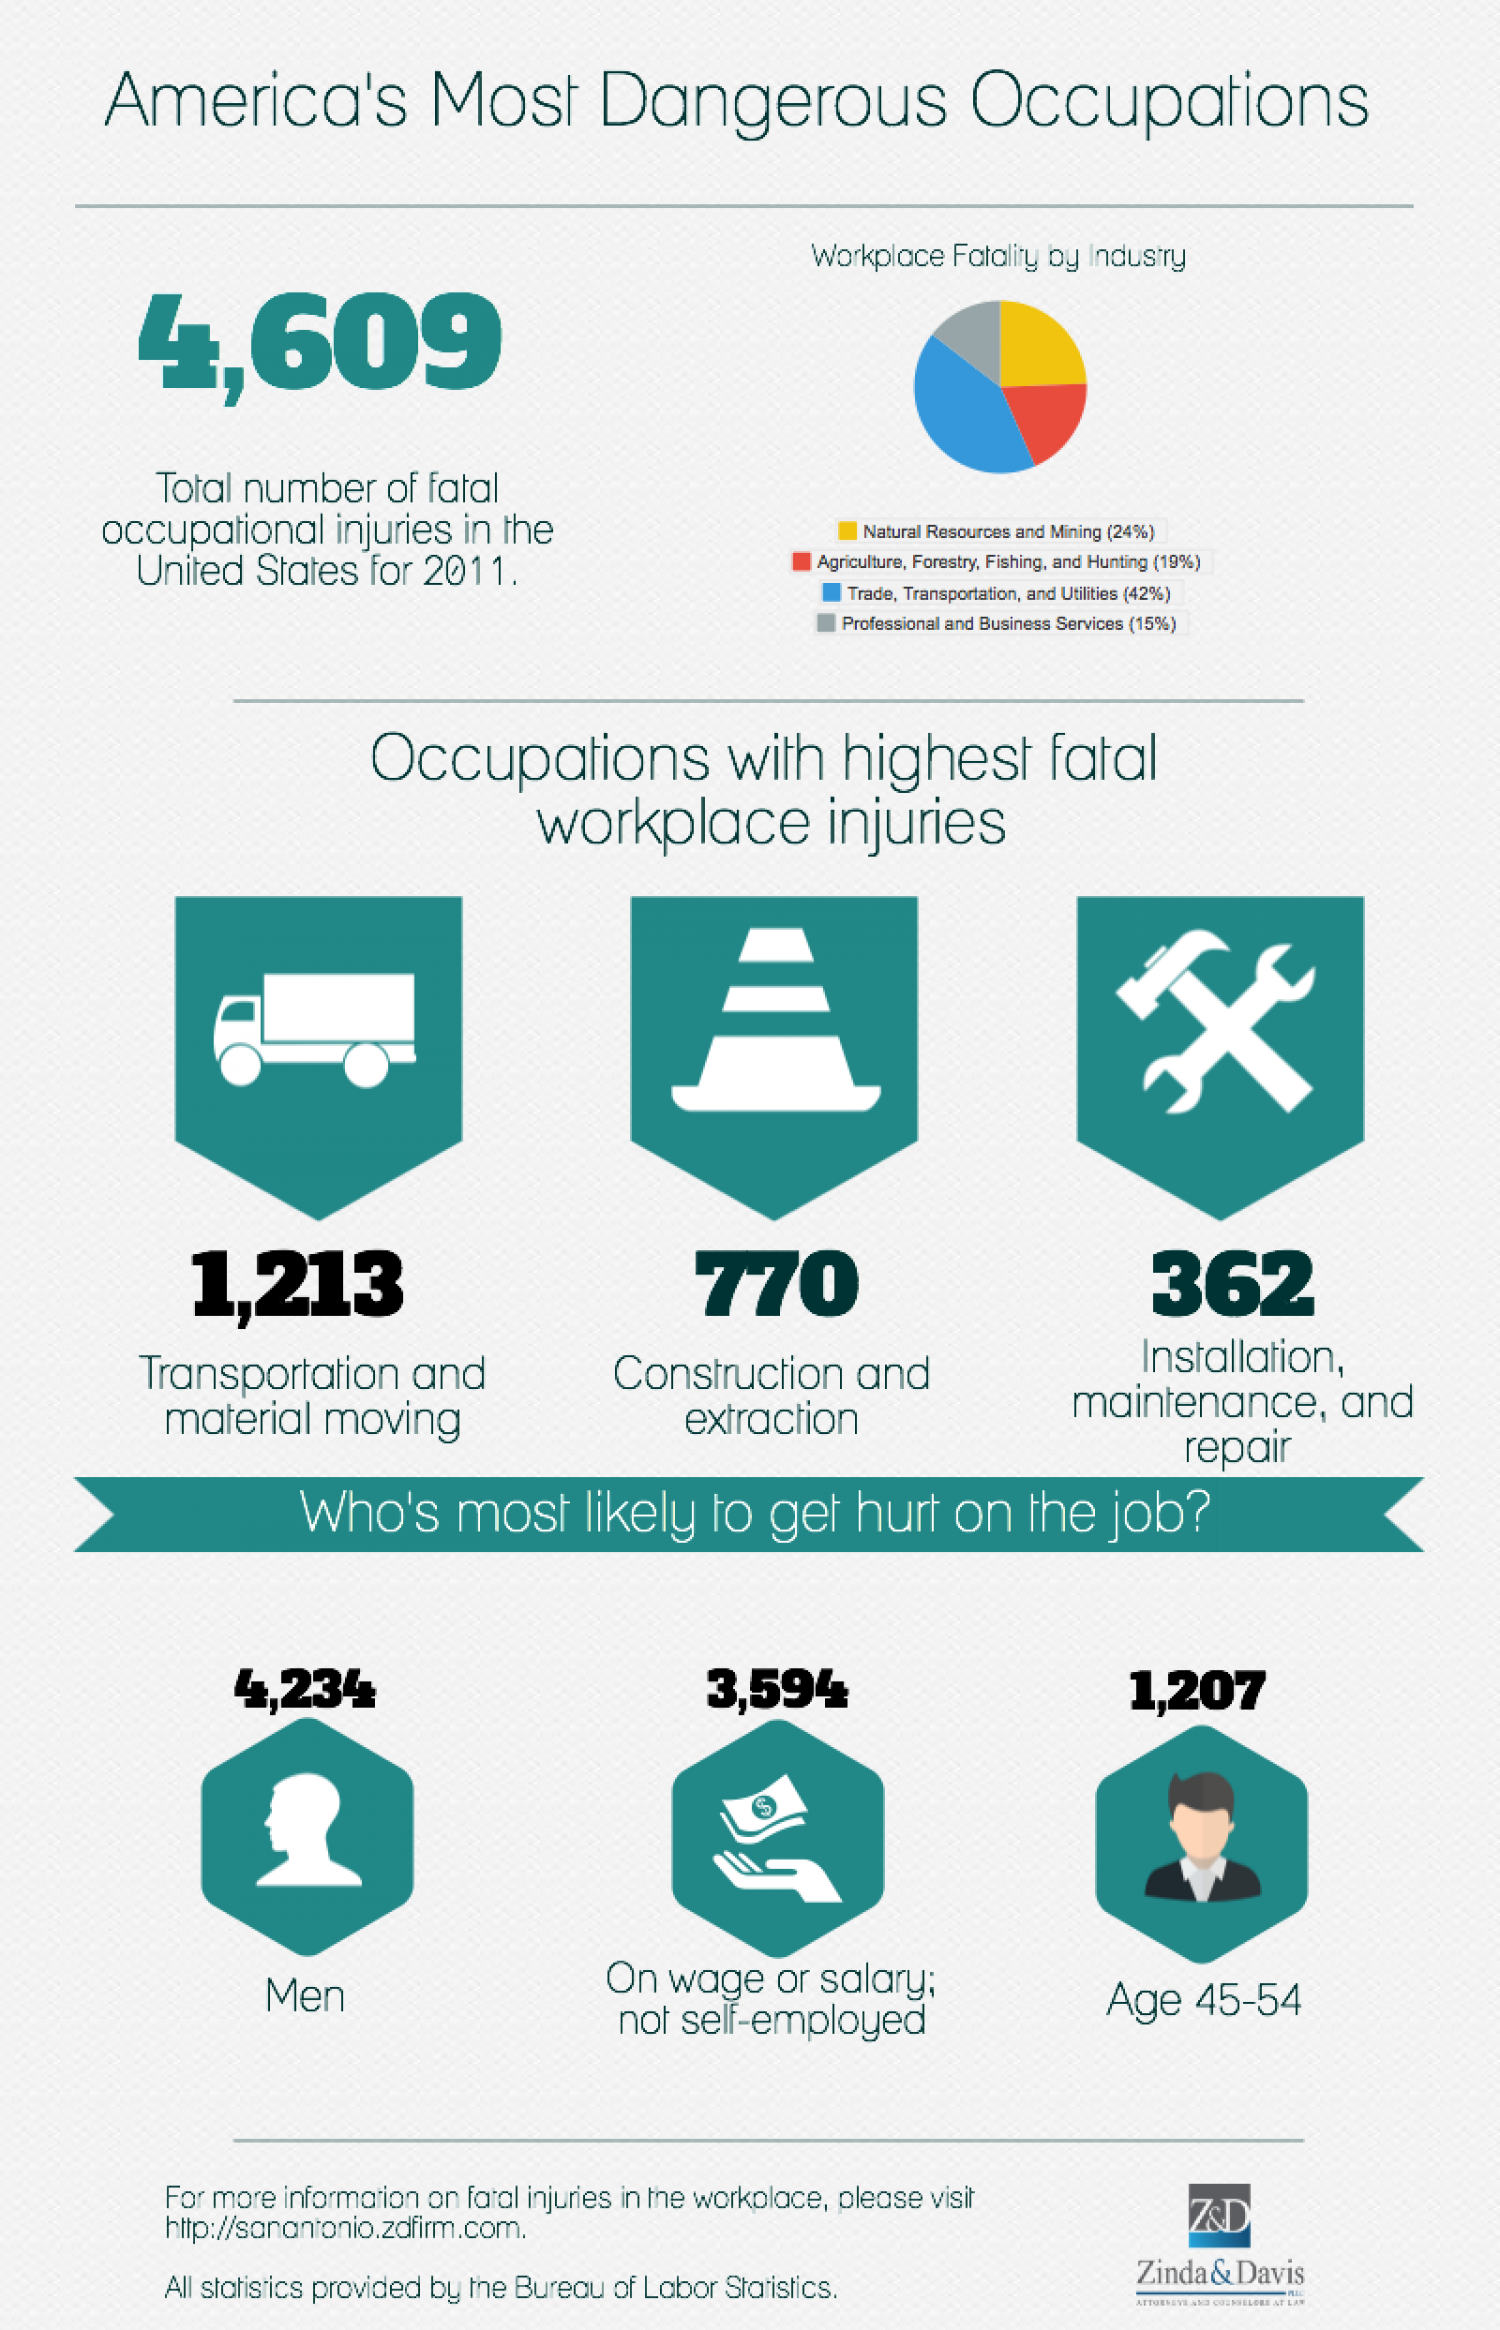 America's Most Dangerous Occupations Infographic